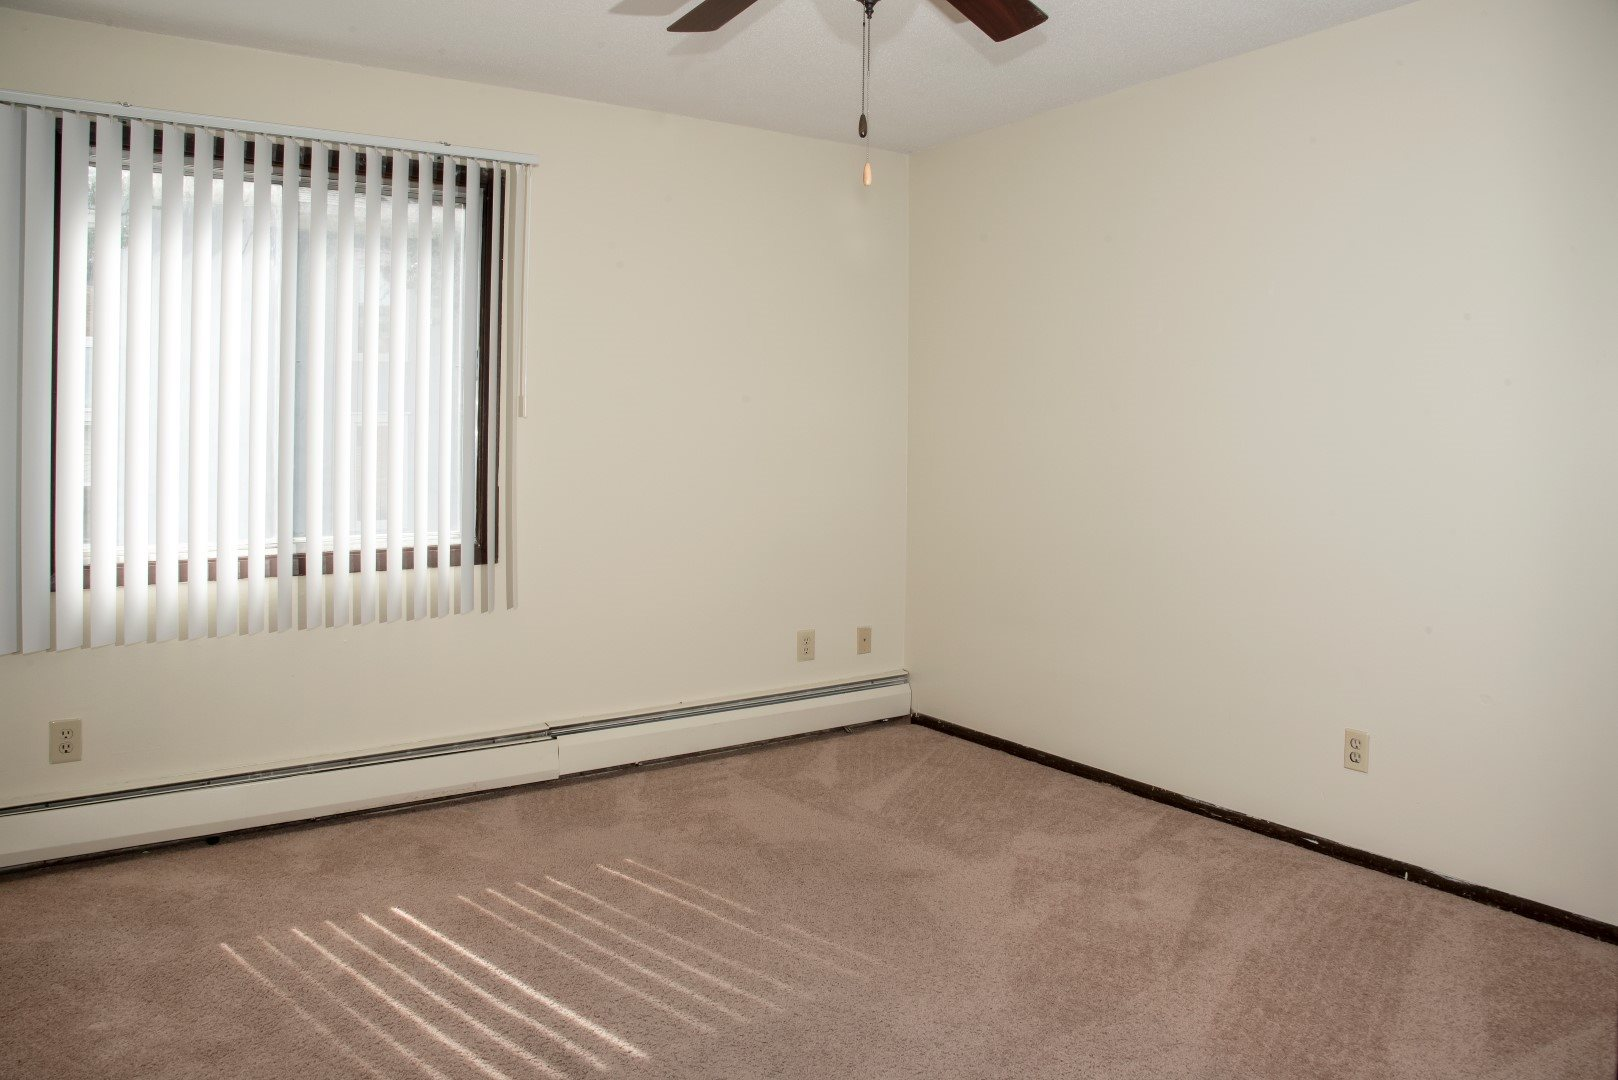 2 bedroom apartment - 2nd bedroom with ceiling fan